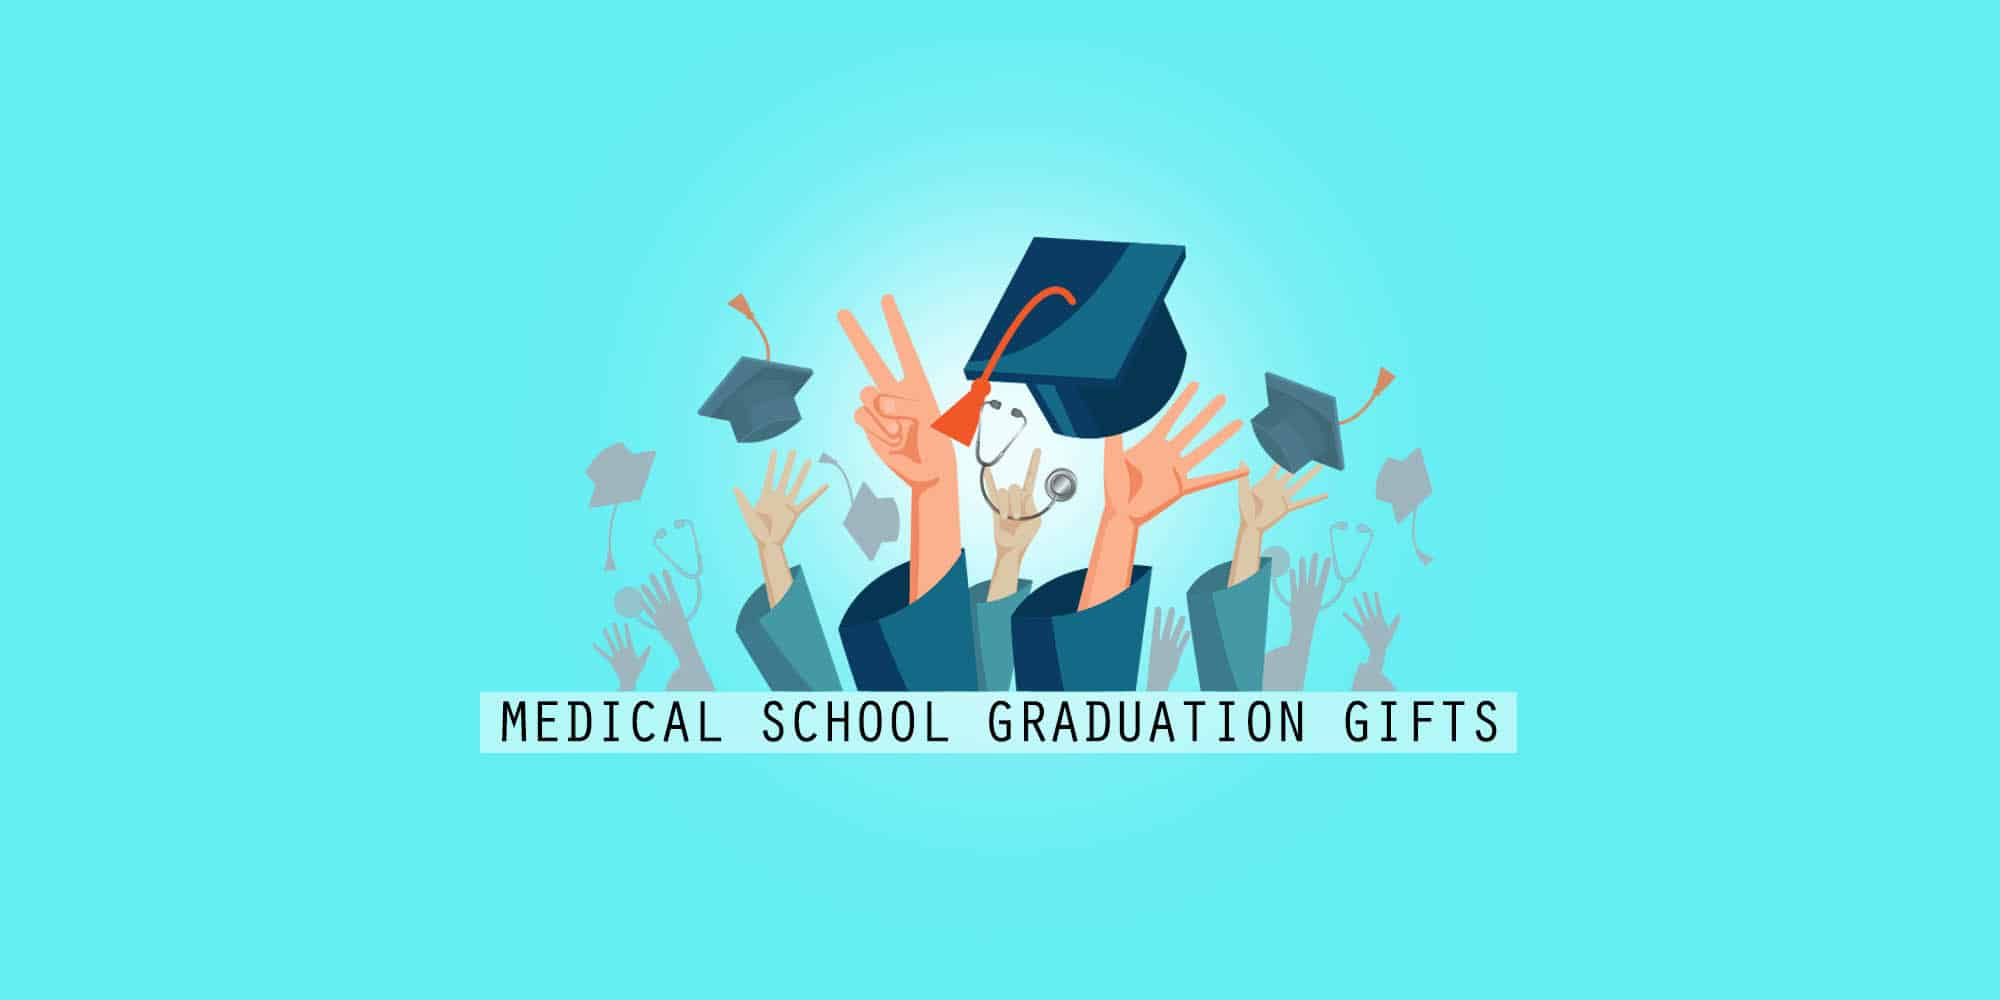 31 Best Medical School Graduation Gifts: Unique And Thoughtful Gift Ideas (2021)